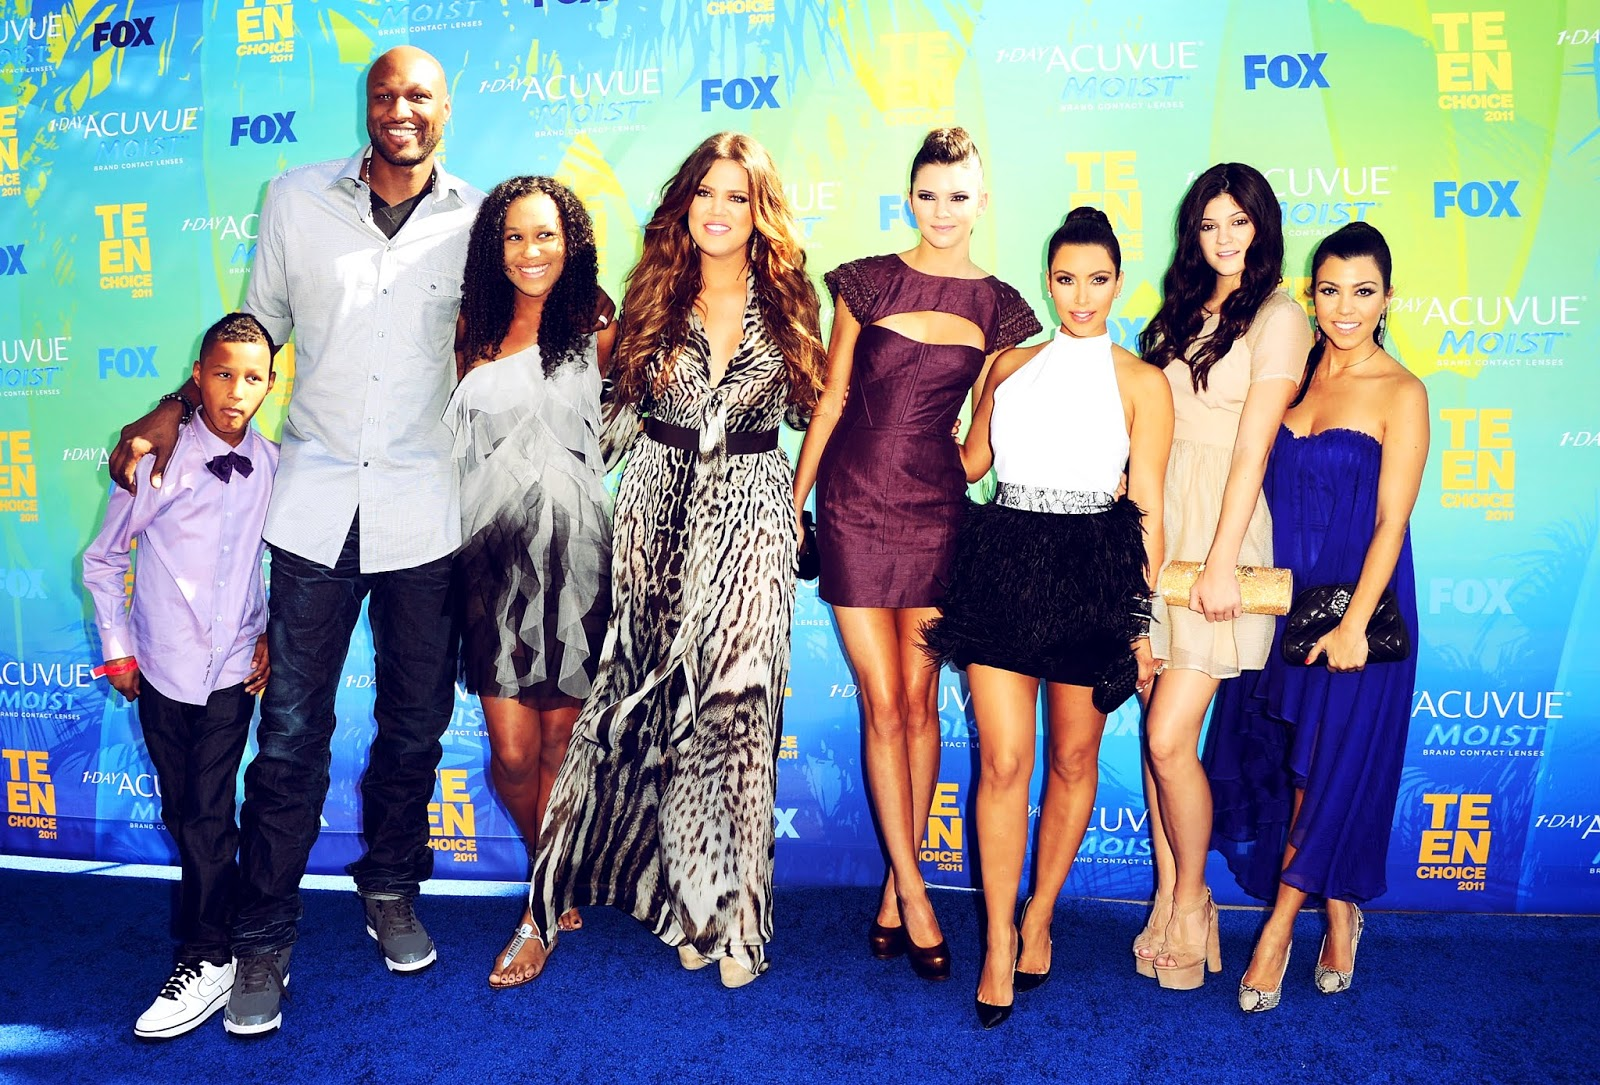 26 - Teen Choice Awards in August 11, 2011